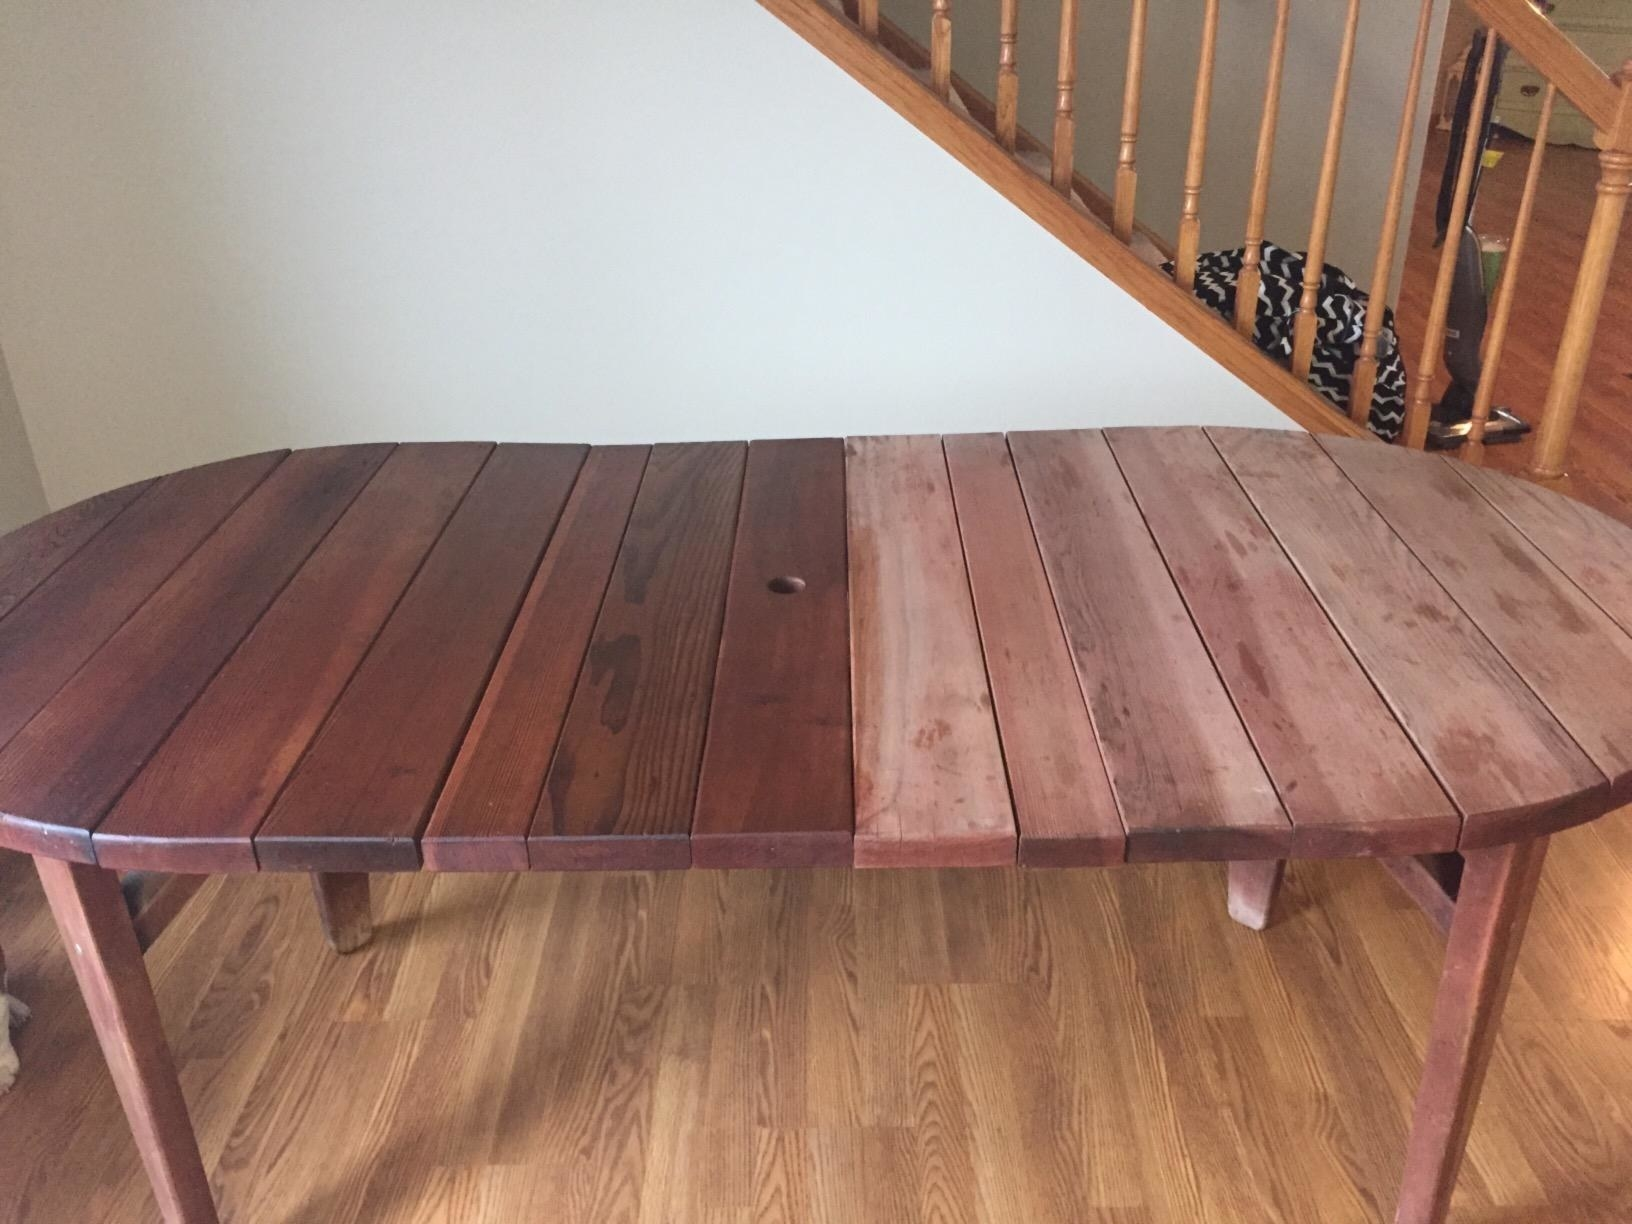 reviewer's before-and-after of a wooden table with half of it faded and worn compared to the other half looking darker, cleaner, and polished